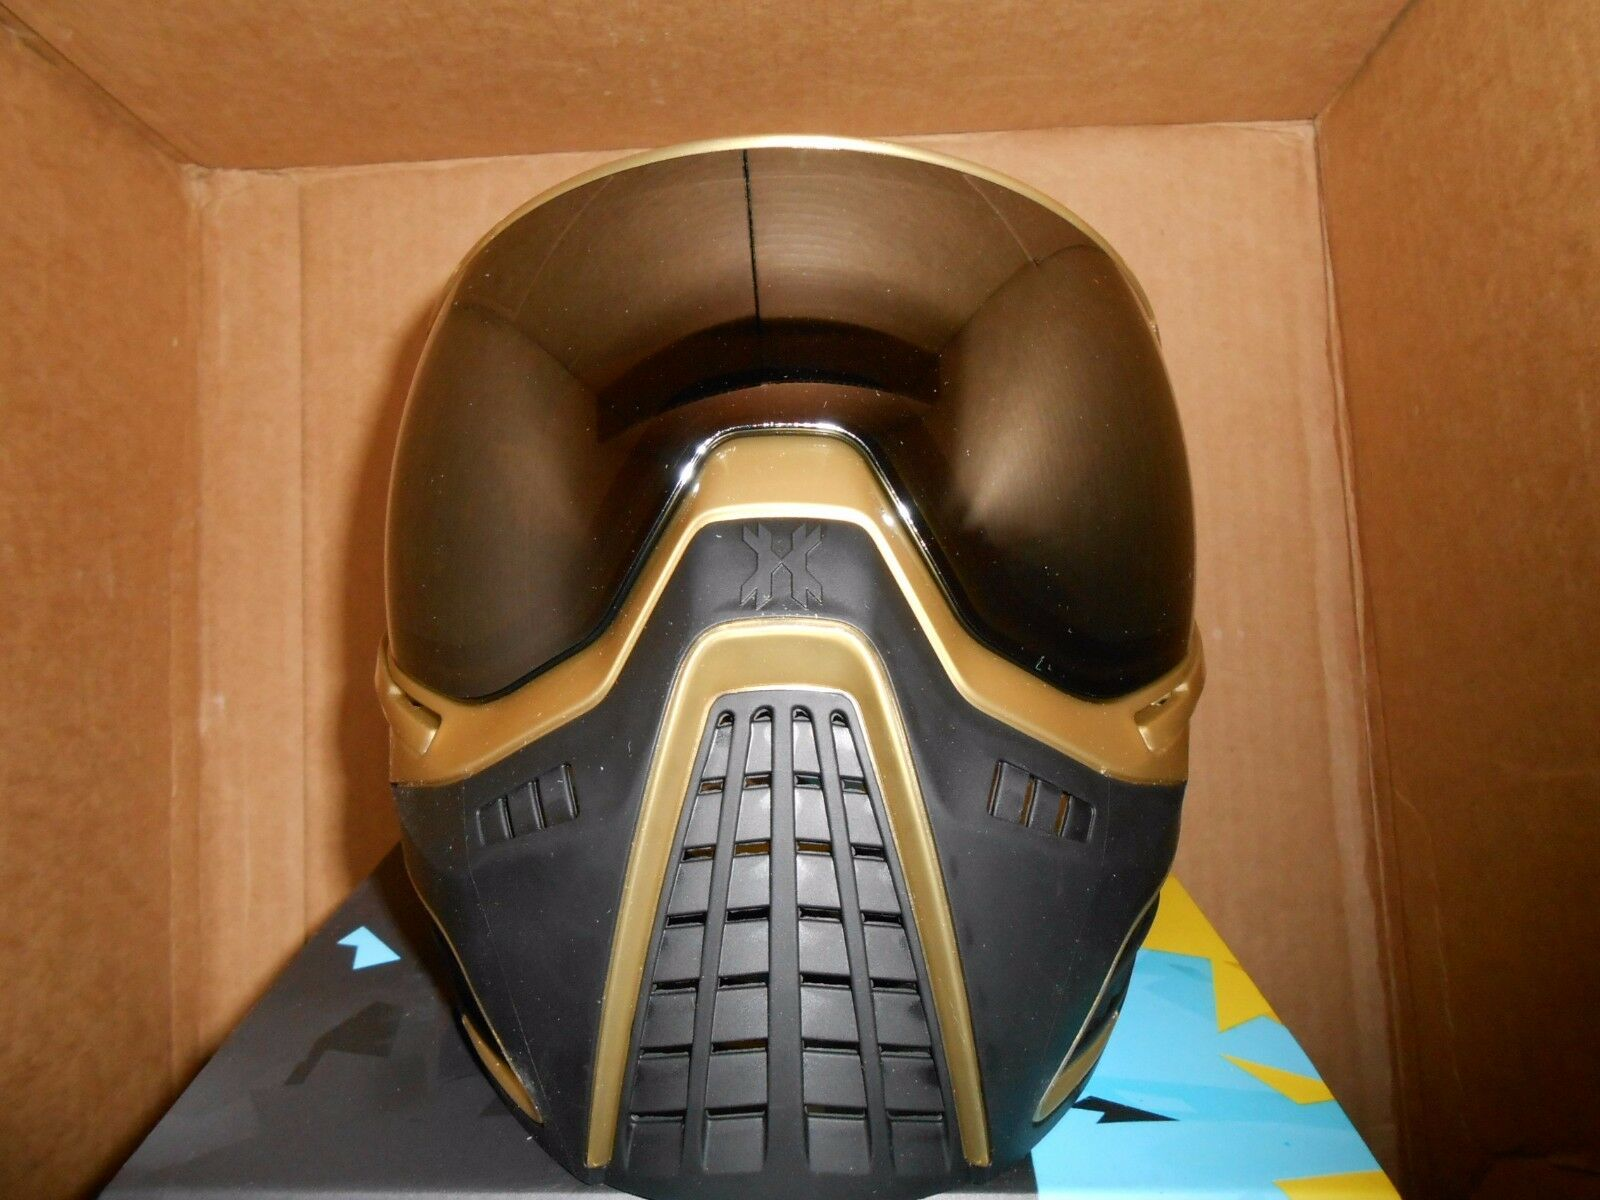 New HK Army KLR Thermal Mirage Paintball Goggles Mask - Gold w/ Mirage Thermal Chrome Lens 38710a